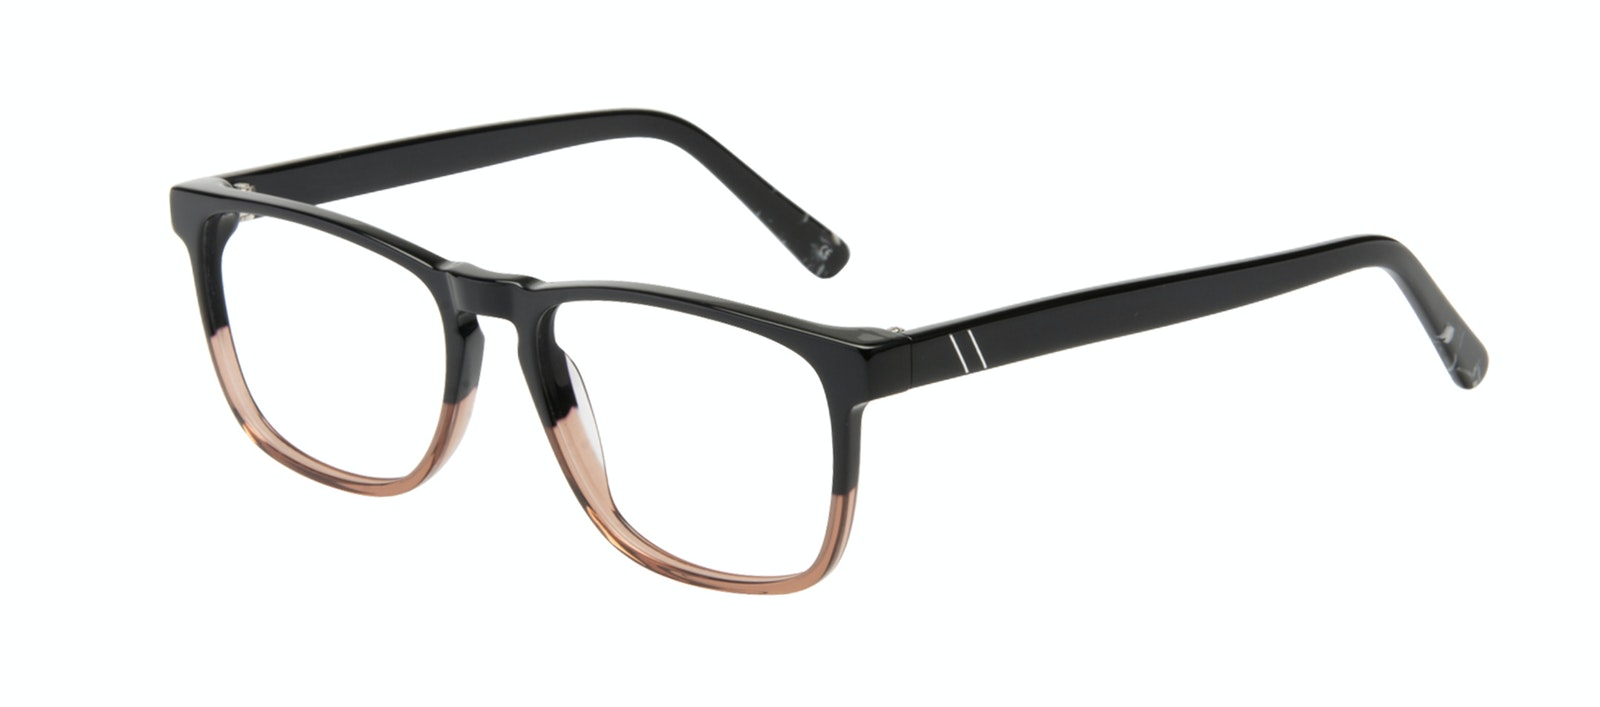 Affordable Fashion Glasses Rectangle Eyeglasses Men Loft Wood Terra Tilt